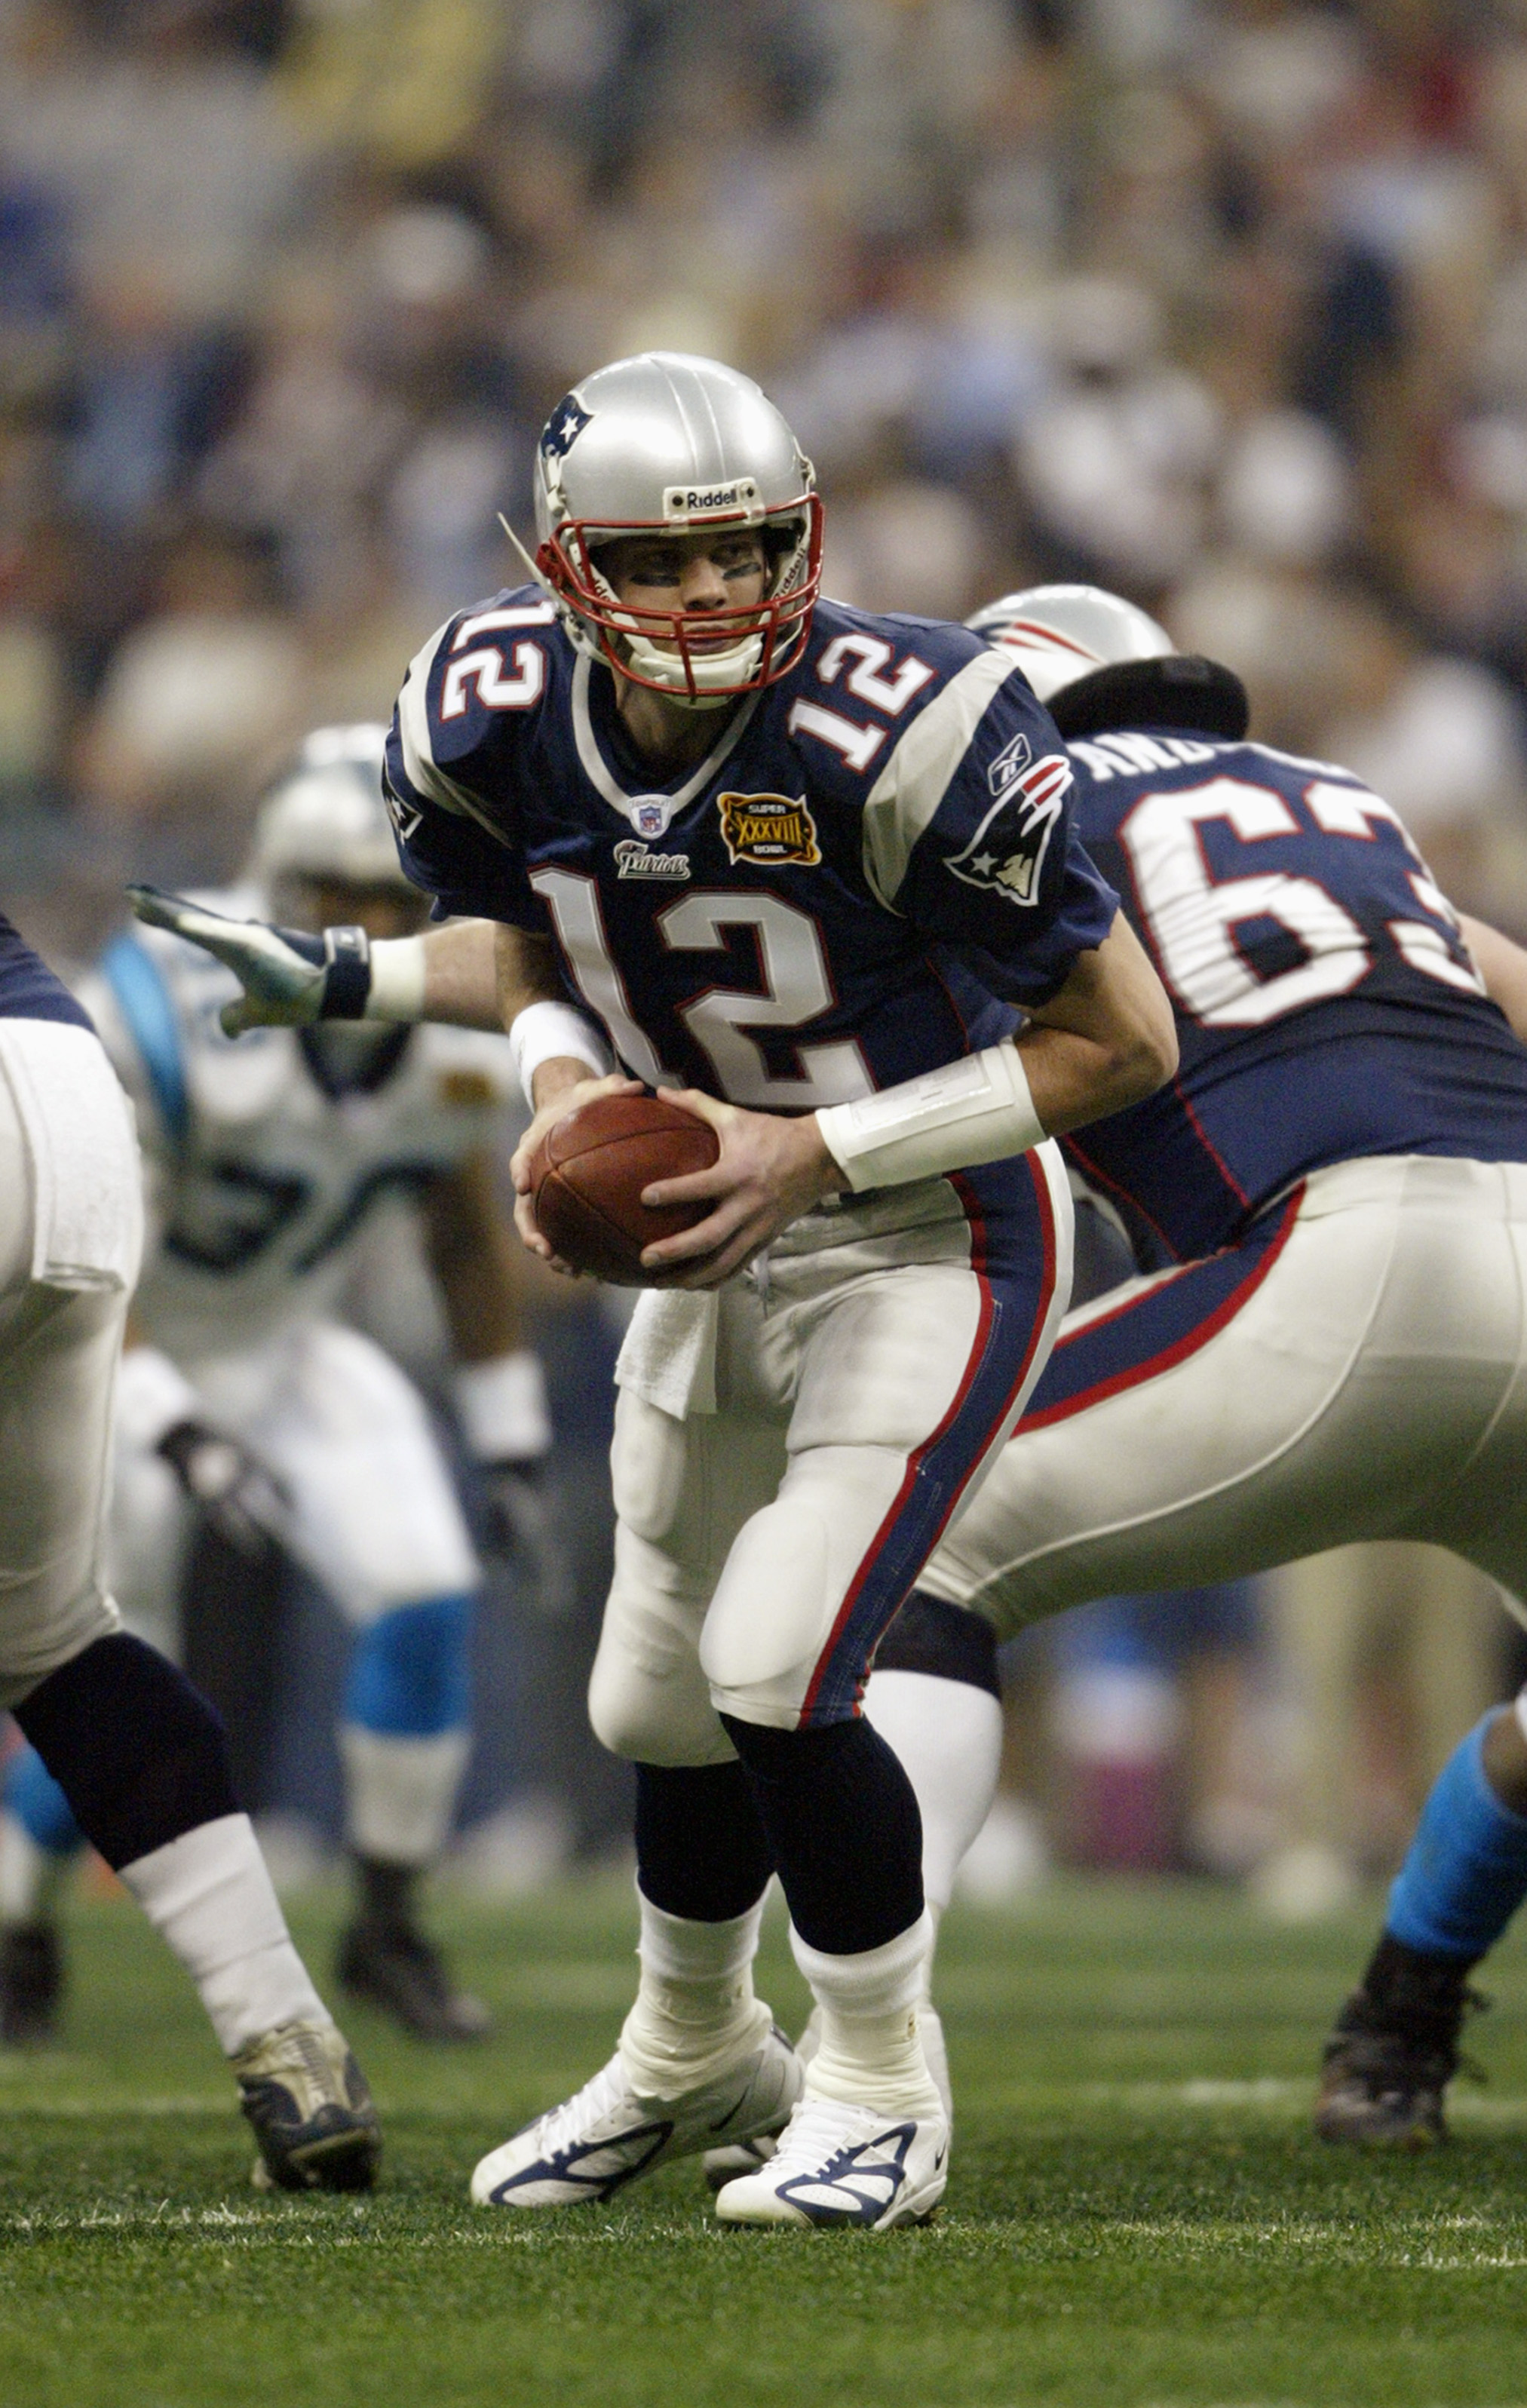 HOUSTON - FEBRUARY 1:  Qaurterback Tom Brady #12 of the New England Patriots attempts a hand off against the Carolina Panthers during Super Bowl XXXVIII at Reliant Stadium on February 1, 2004 in Houston, Texas.  The Patriots defeated the Panthers 32-29.